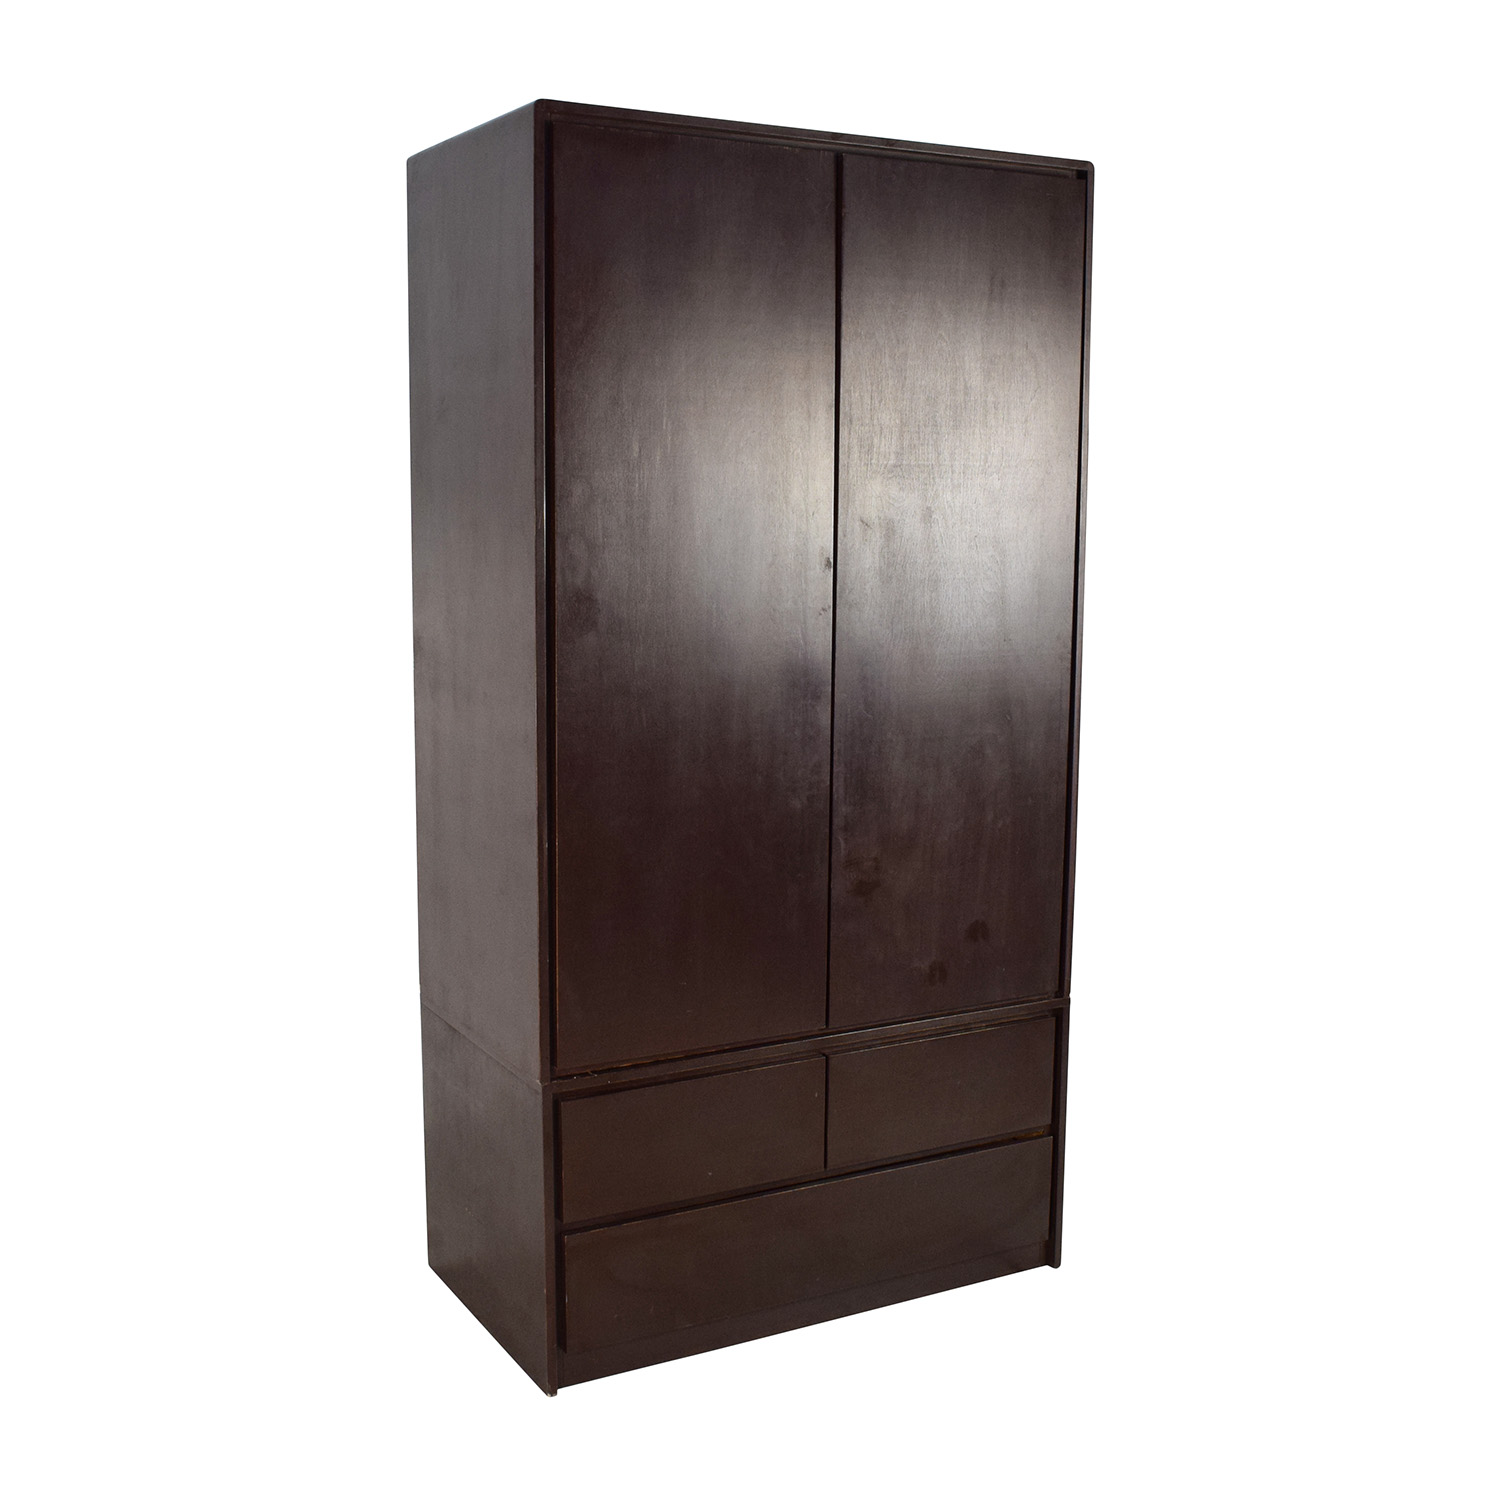 Superieur ... Gothic Cabinet Craft Gothic Cabinet Craft Large Dark Wood Armoire  Wardrobes U0026 Armoires ...